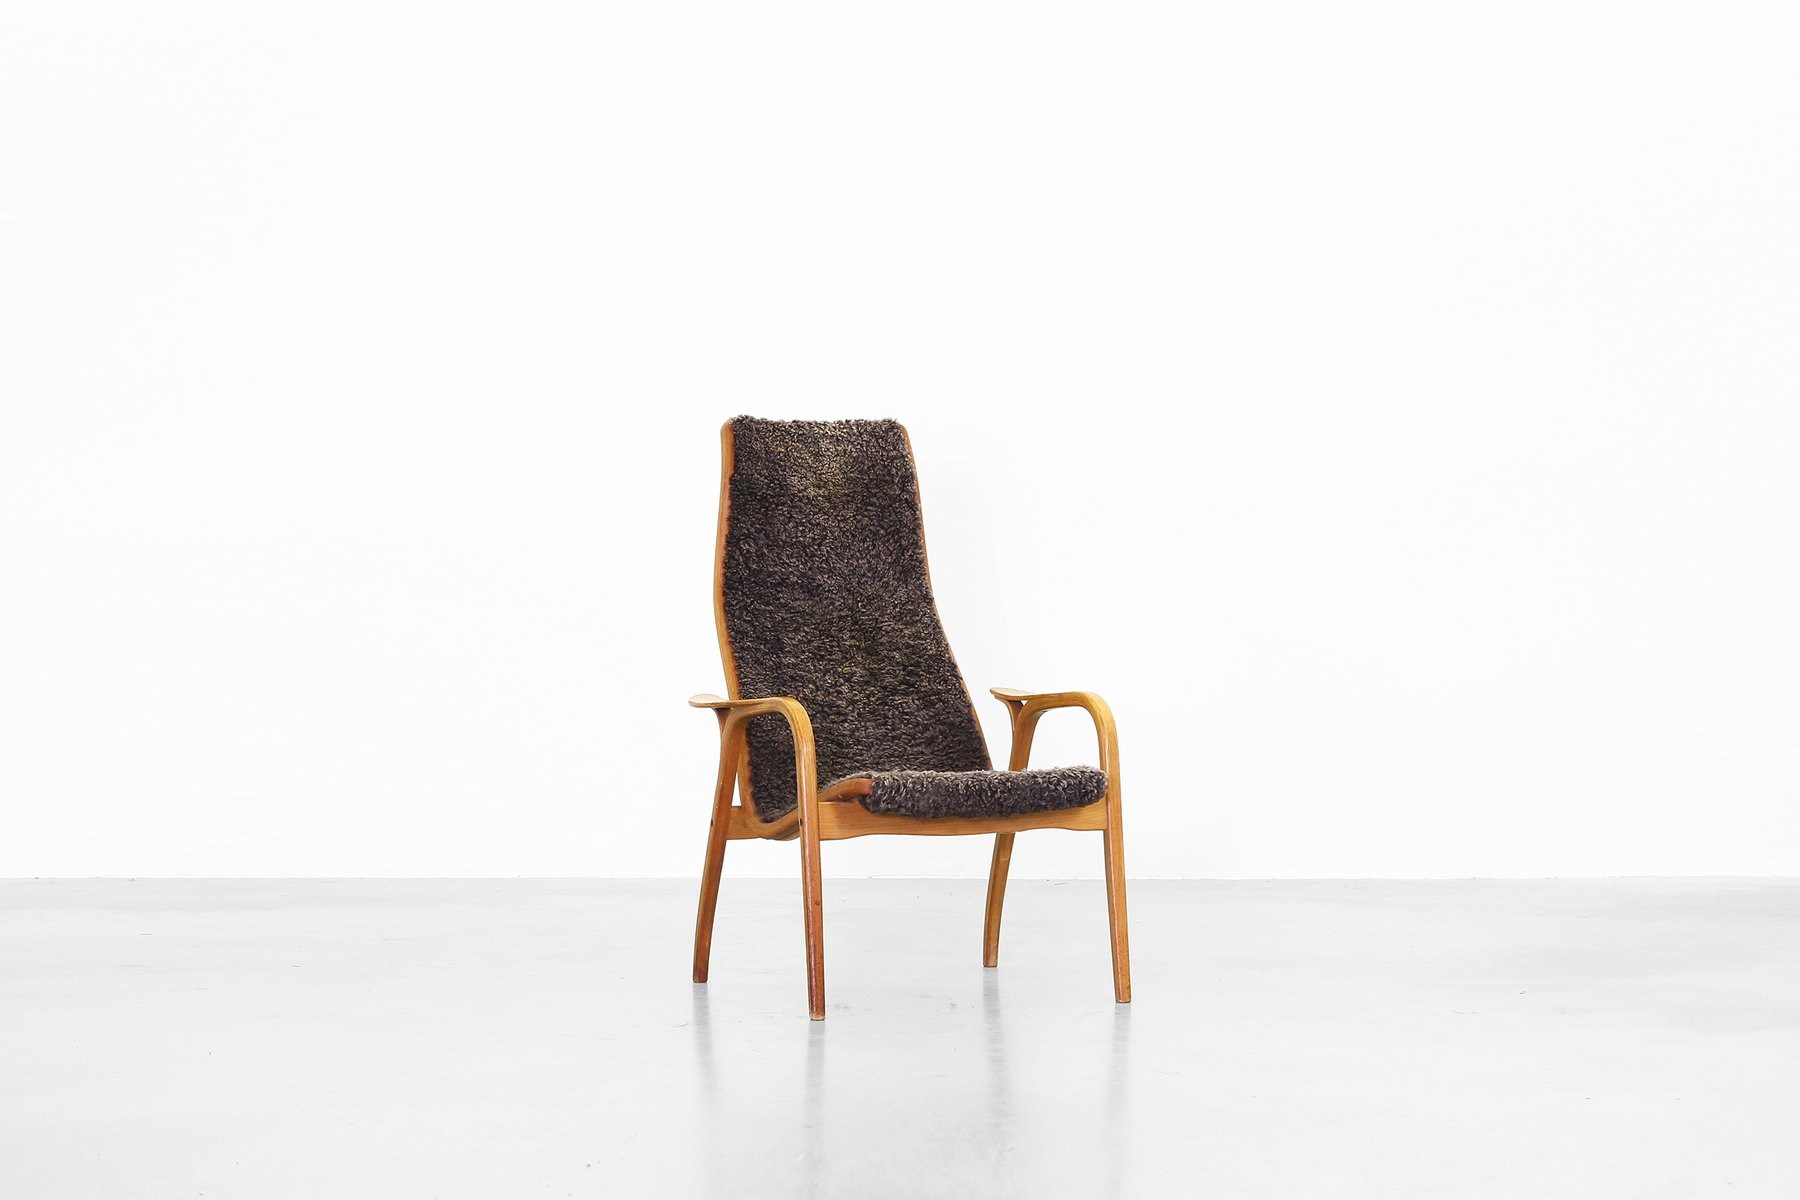 Vintage Swedish Lamino Lounge Chair by Yngve Ekström for Swedese Design, 1960s for sale at Pa